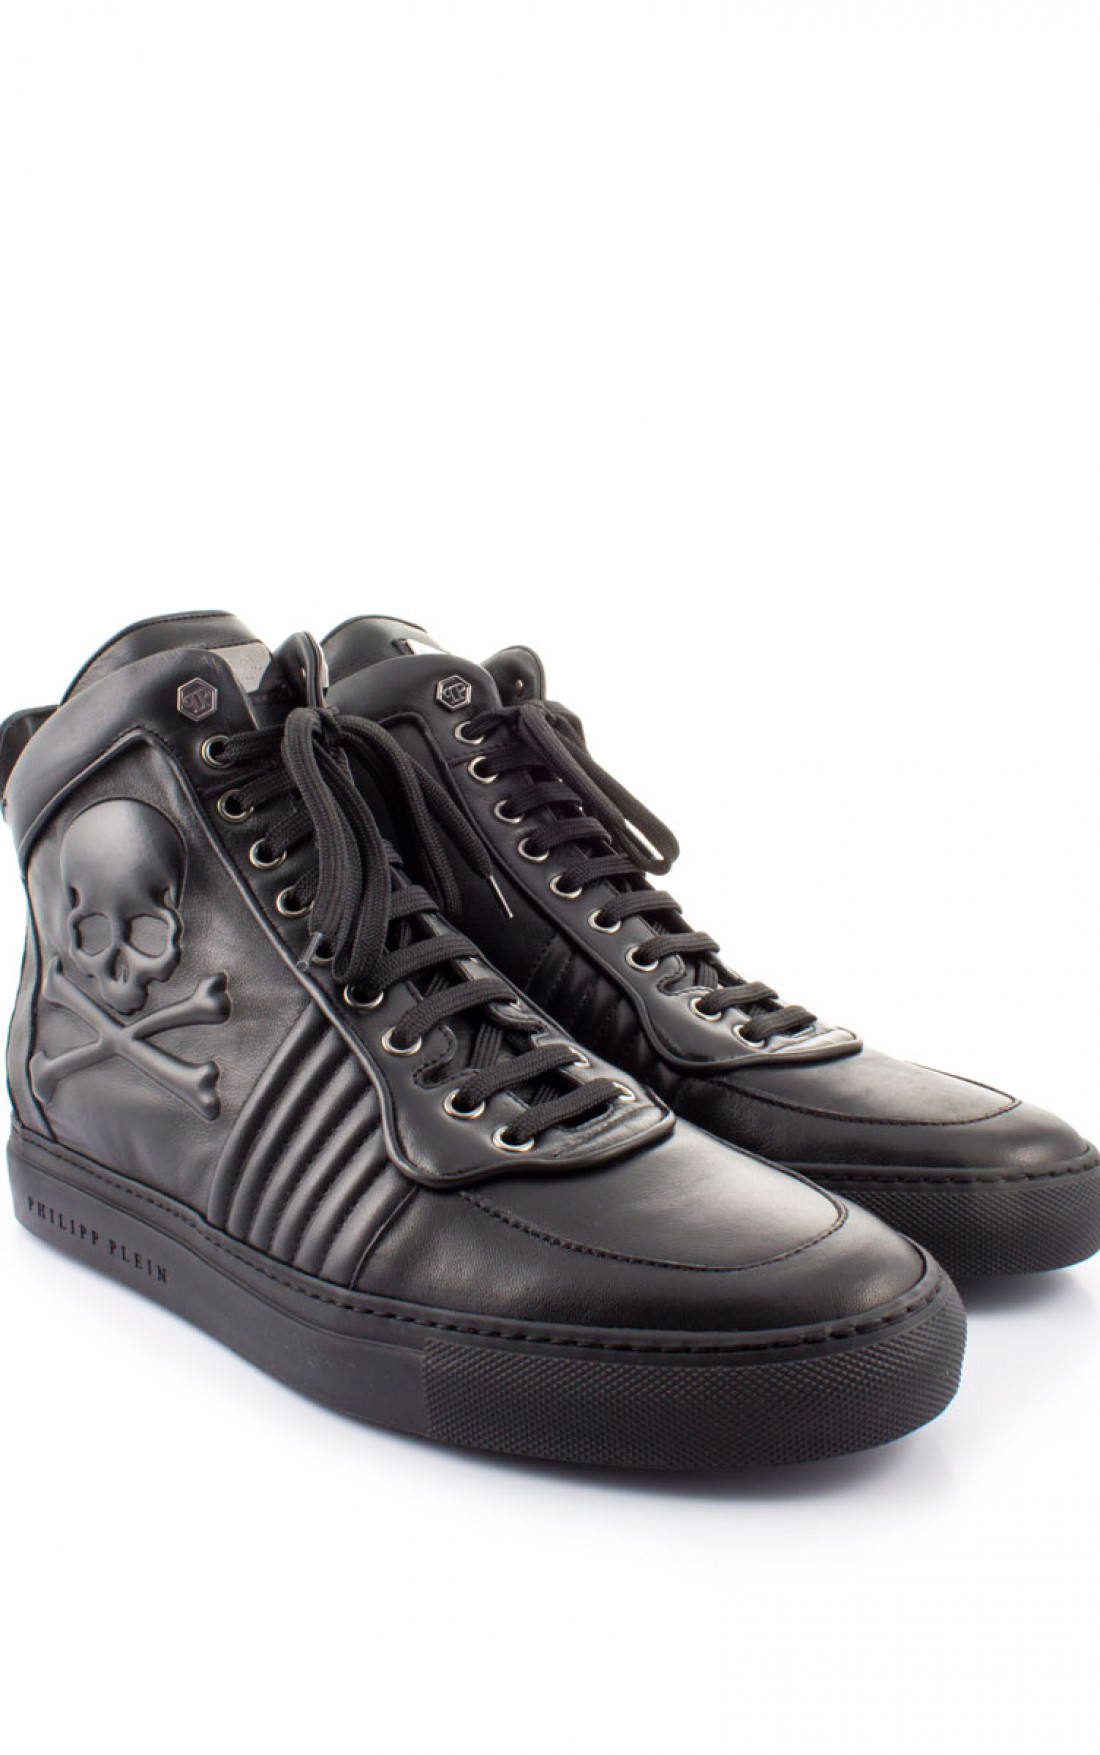 philipp plein skulls sneakers black men designer